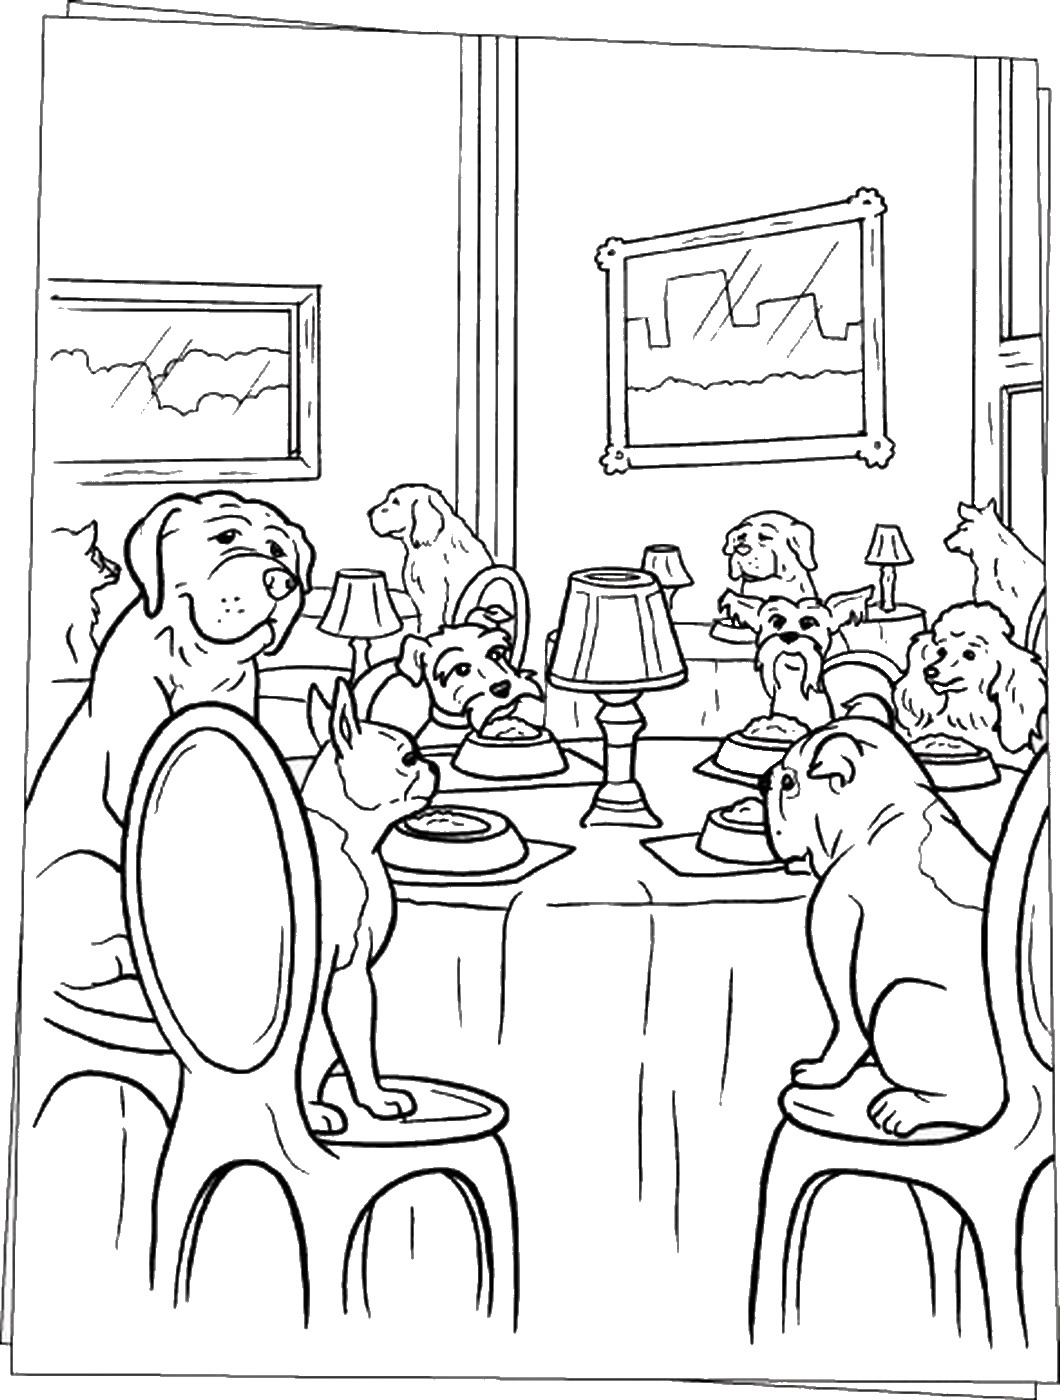 coloring pages hotel - photo#18